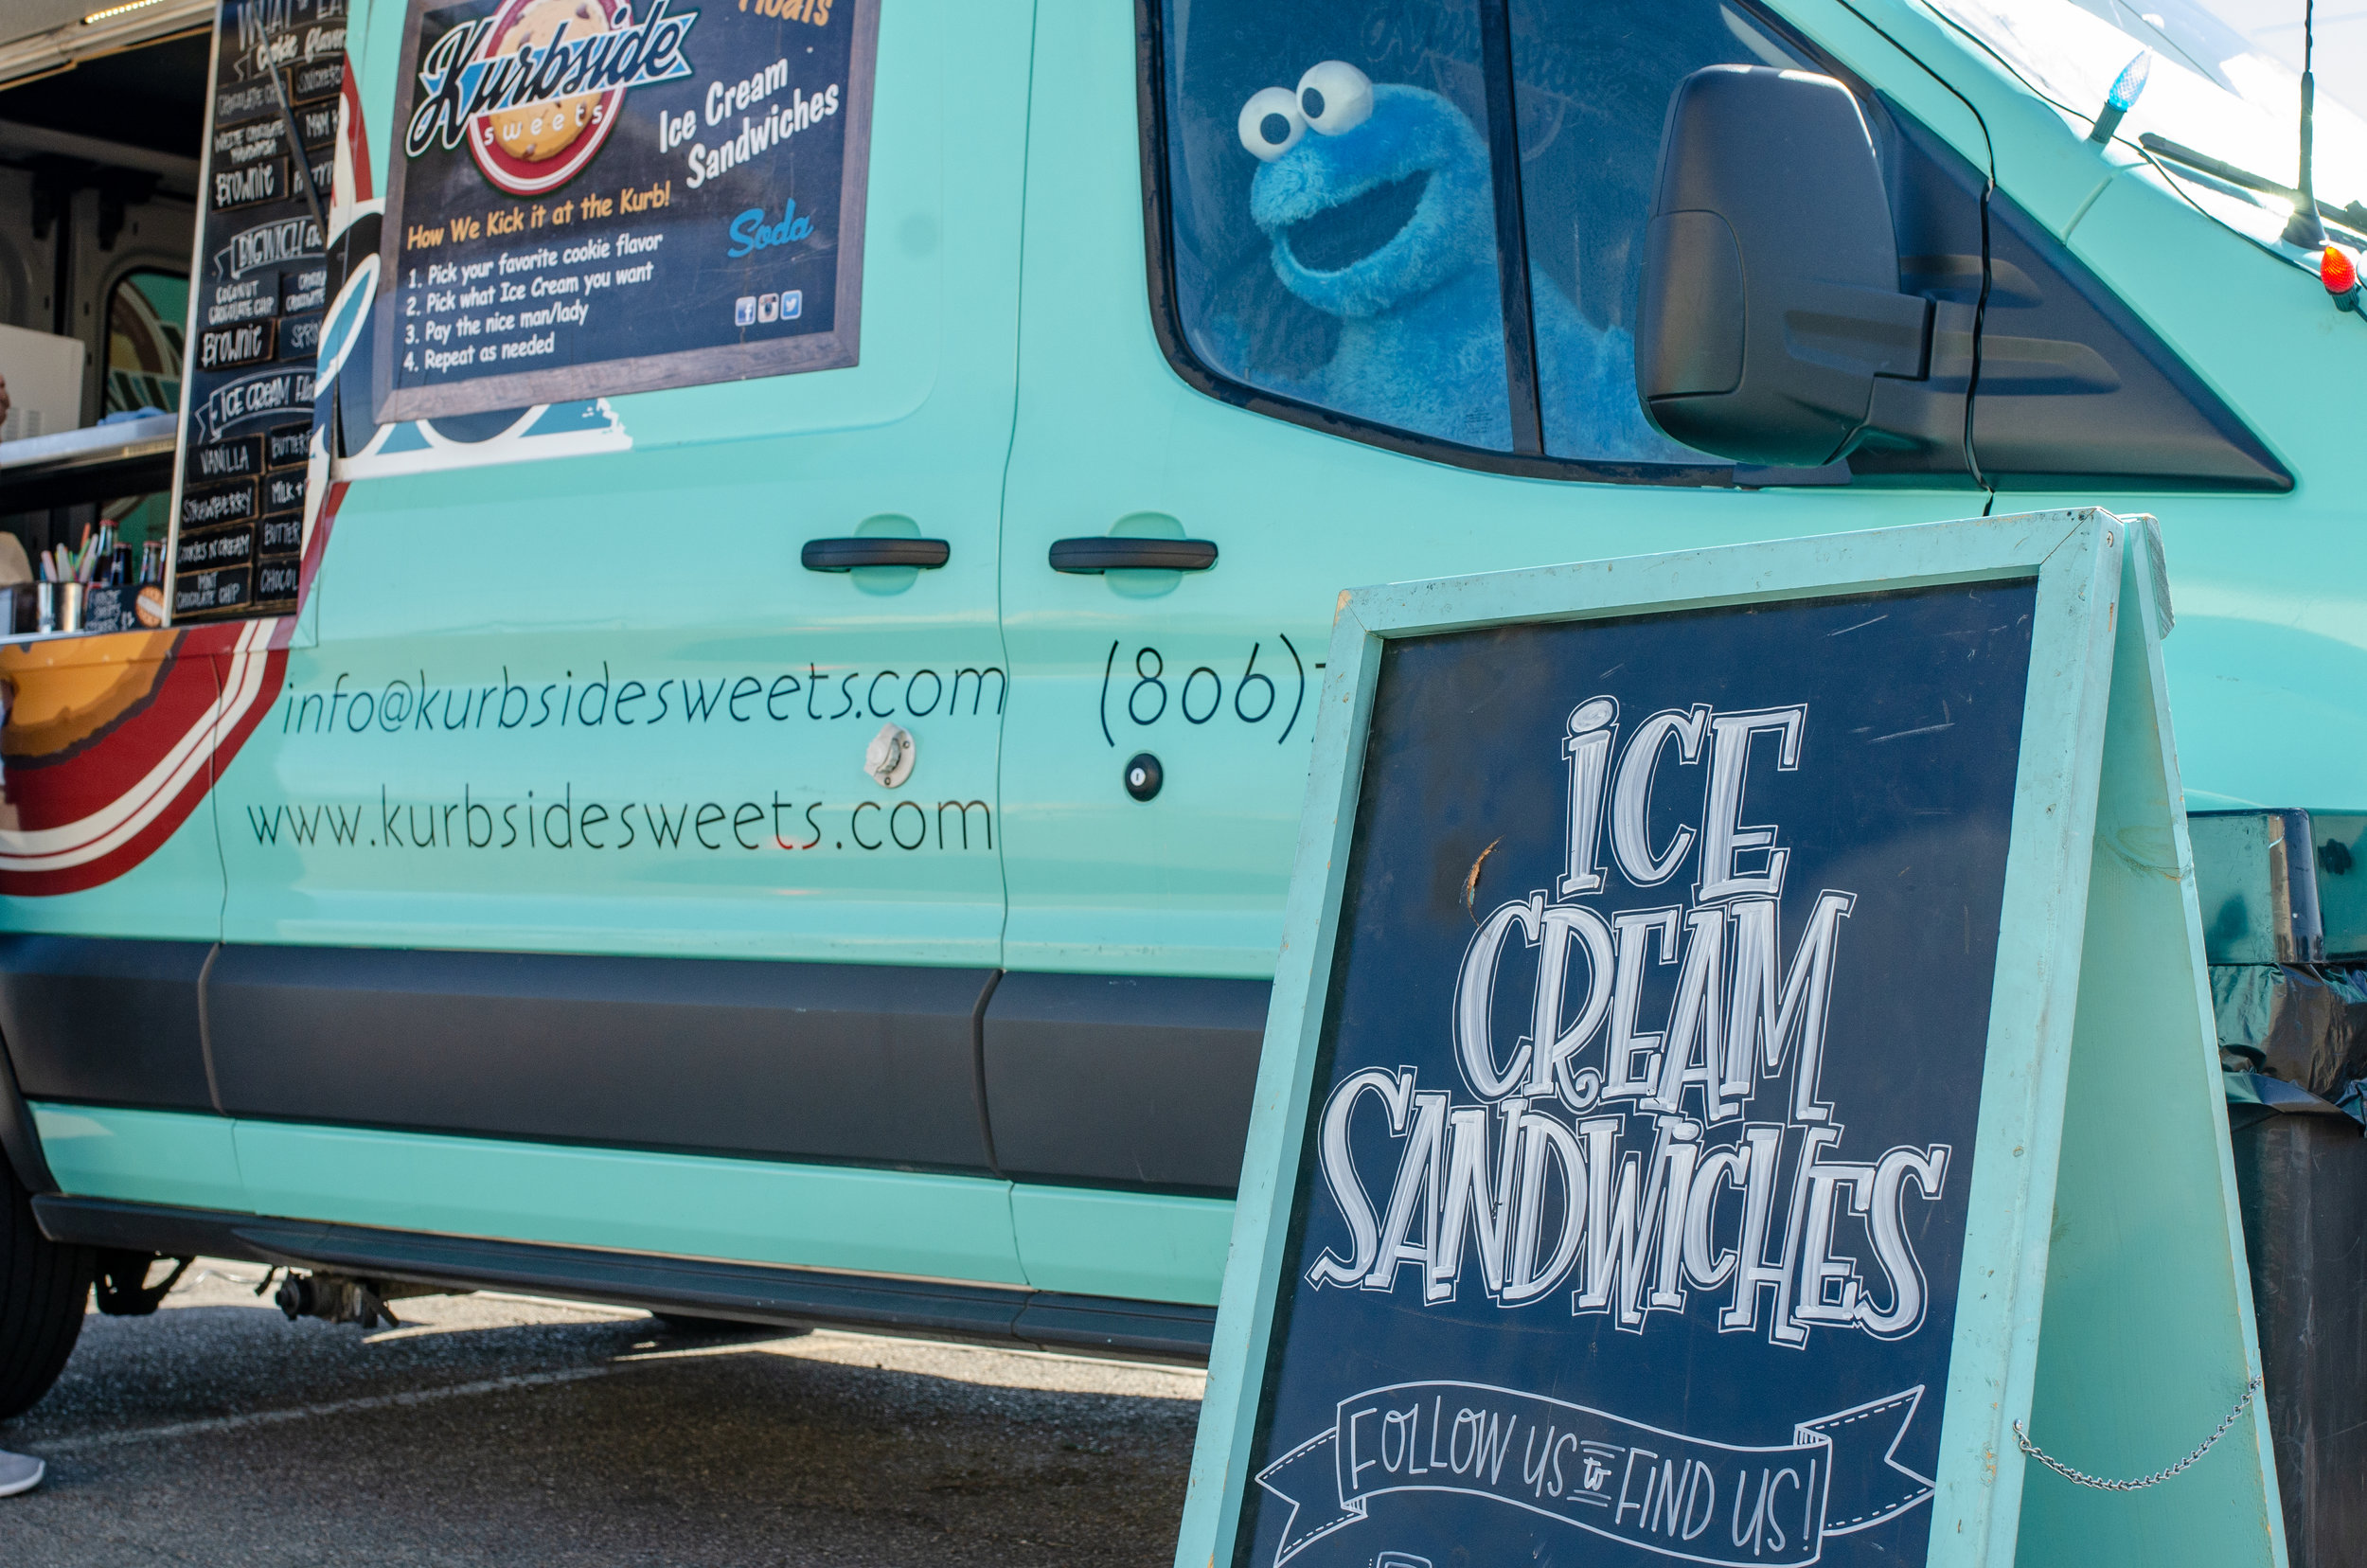 About Kurbside Sweets - A food truck serving custom made ice cream sandwiches using fresh baked cookies and Blue Bell ice cream. From special events to Lubbock's most trafficked street corners you can count on Kurbside to satisfy that sweet tooth.